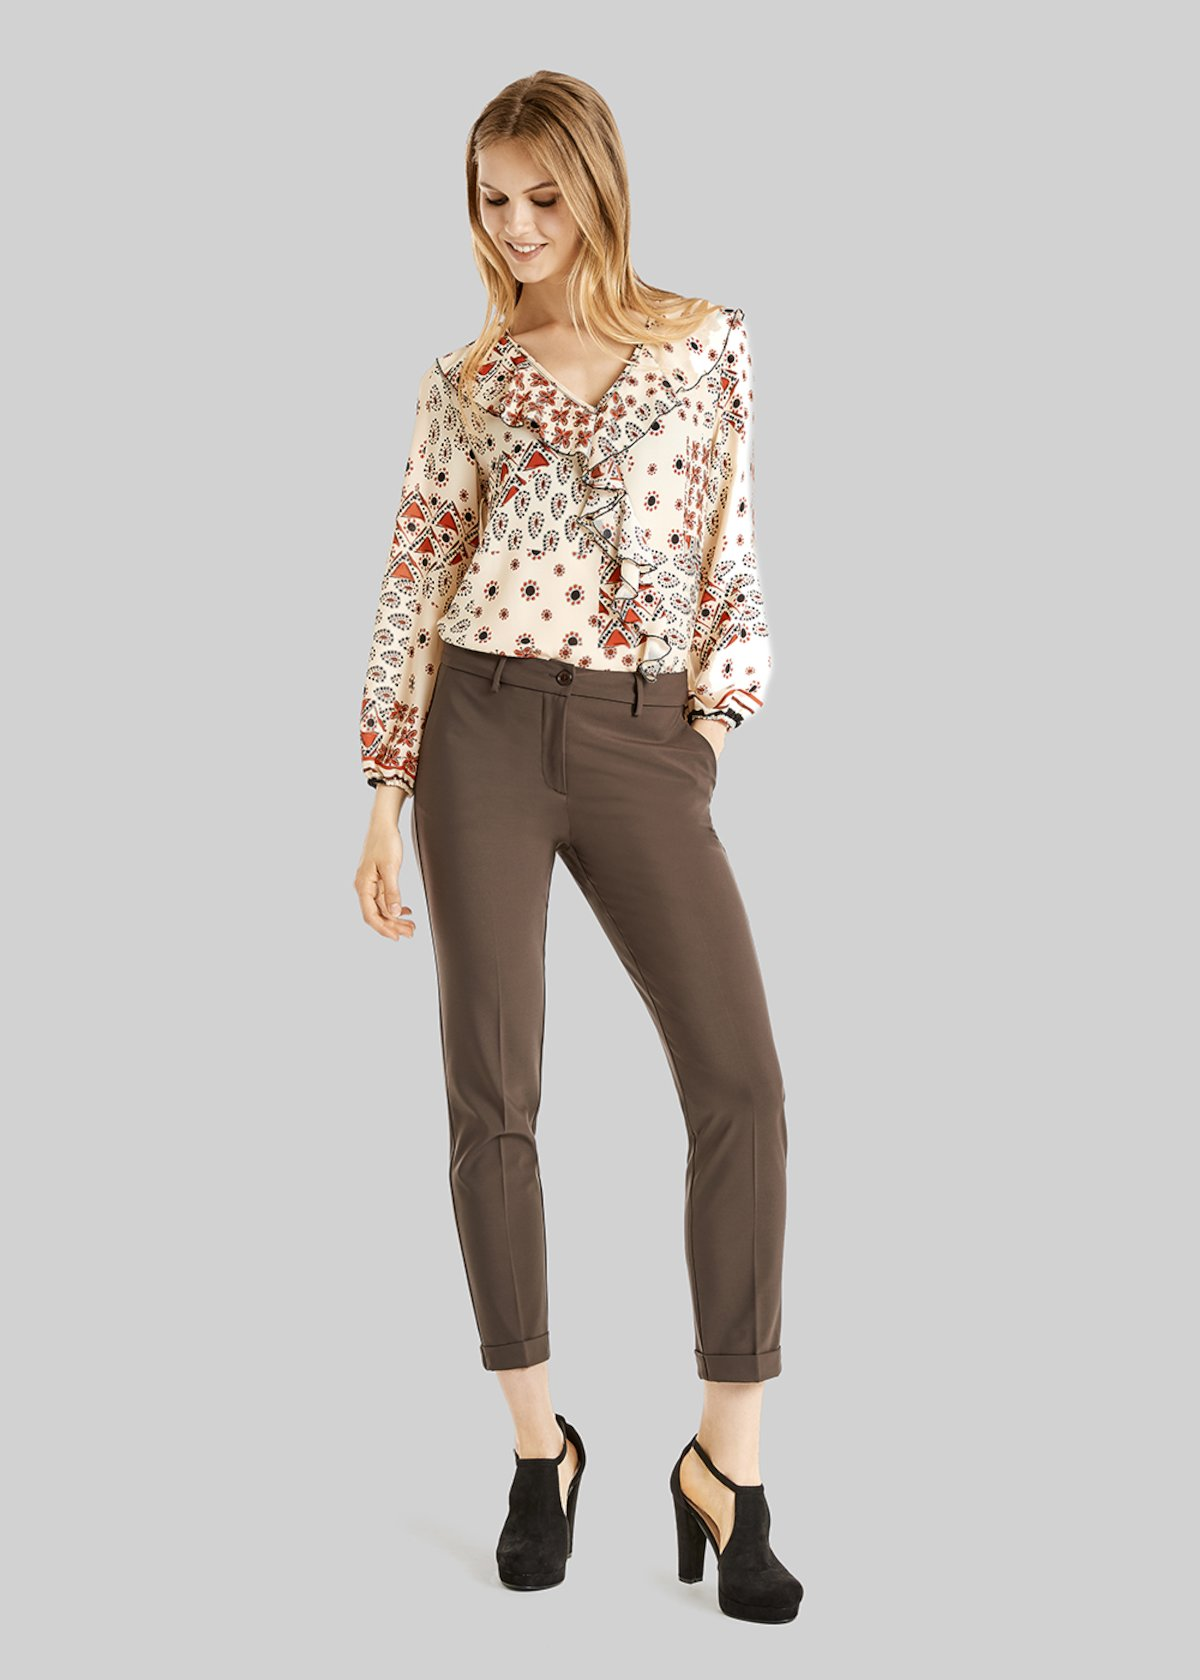 Bella pants of technical fabric with american pockets and turn-ups - Baguette